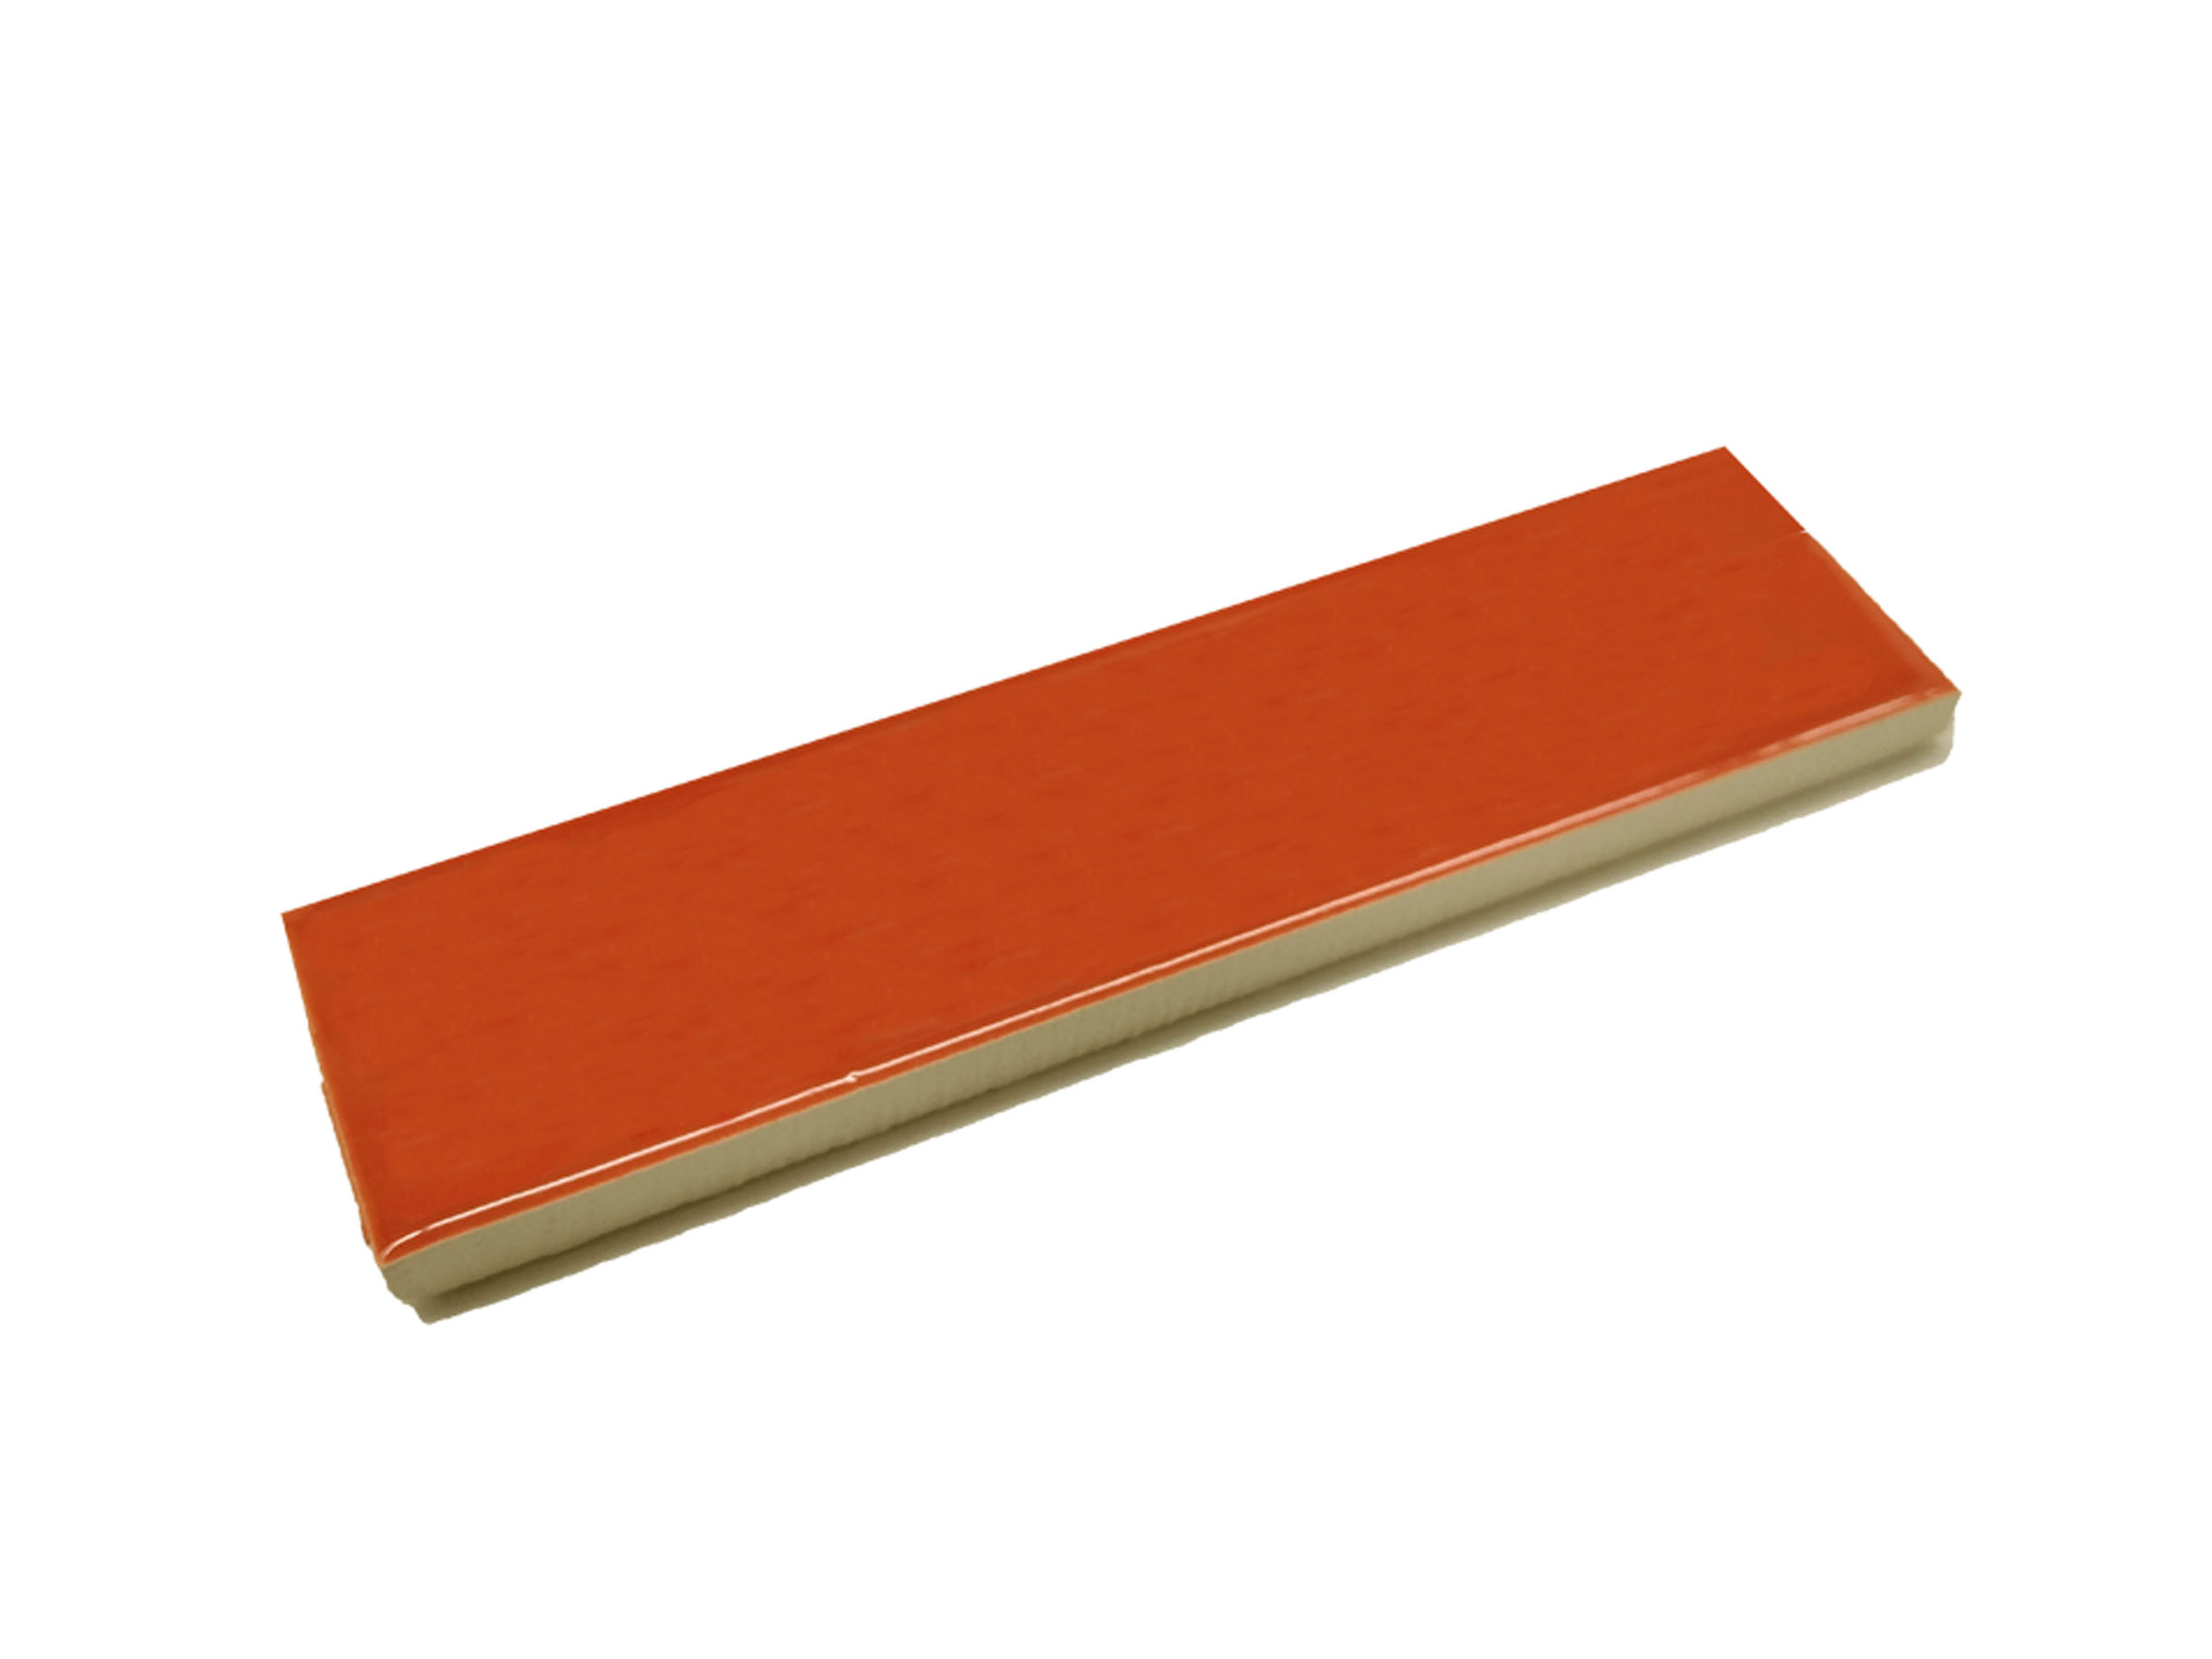 Ceramic Flat Liner Bars Accent Tiles 1 5 x 6 Inches by Tiles-R-Us